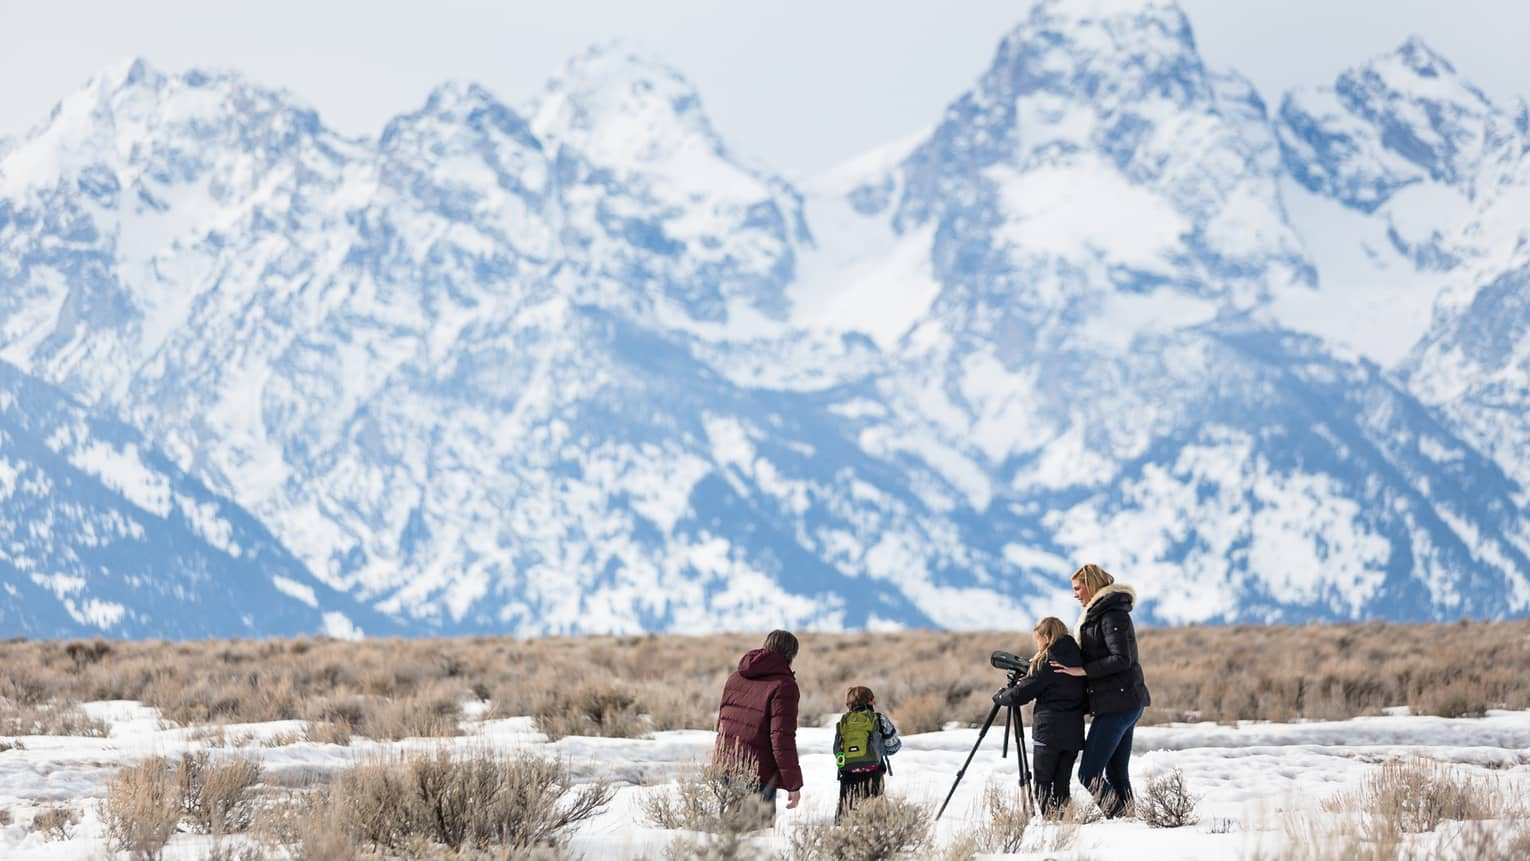 Family in snowy field with camera on tripod pointed at towering mountains